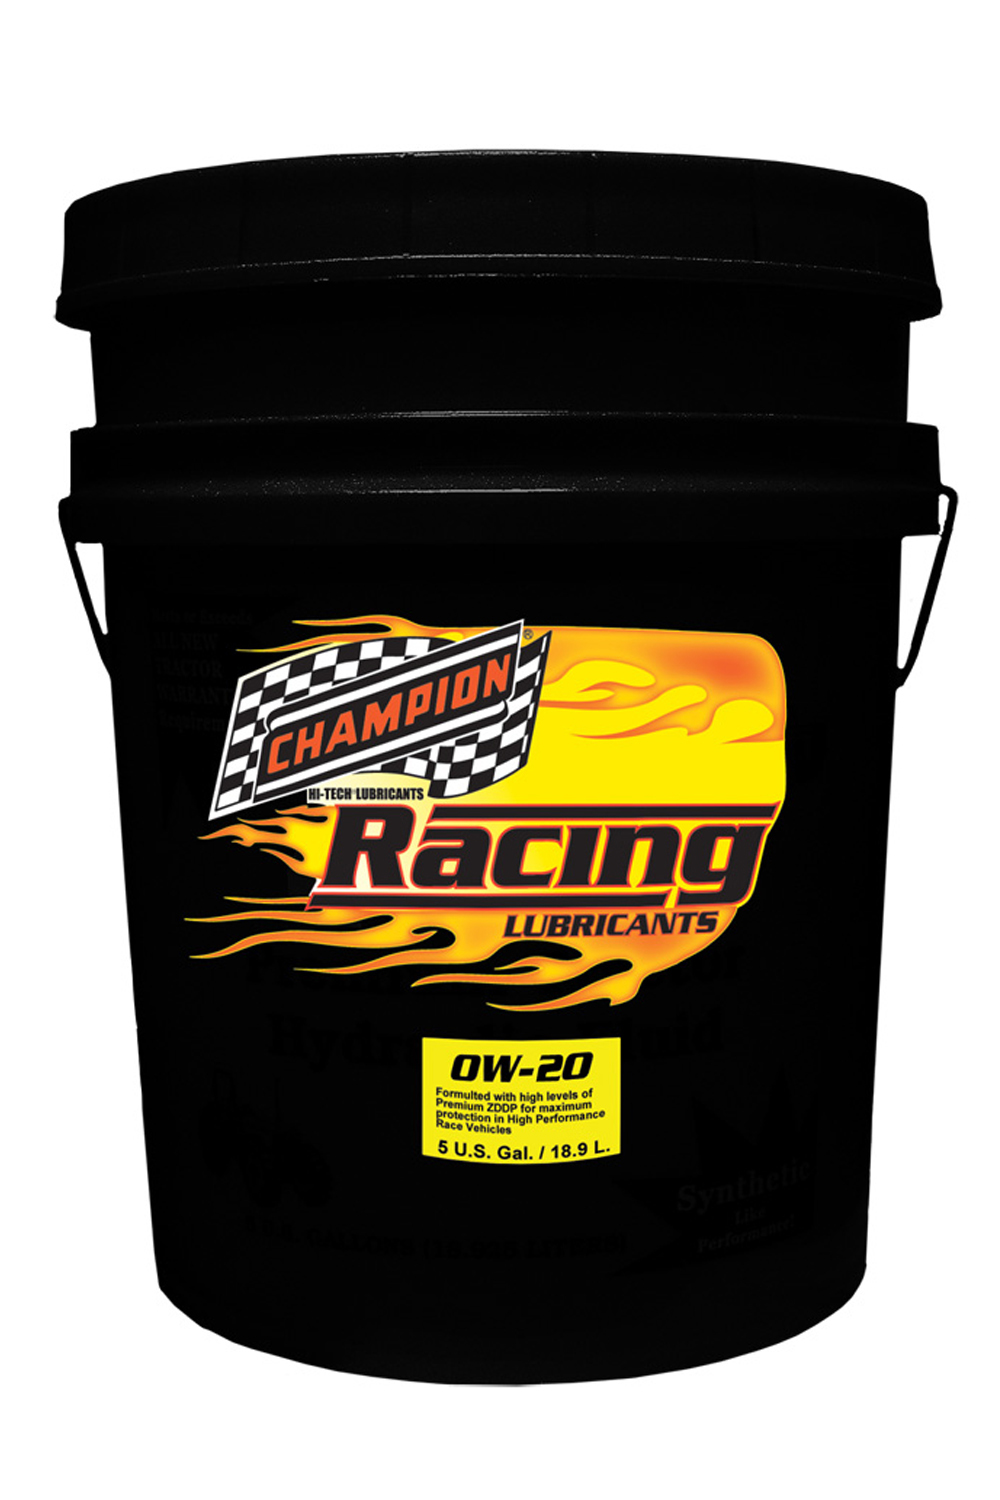 0w20 Synthetic Racing Oil 5 Gallon